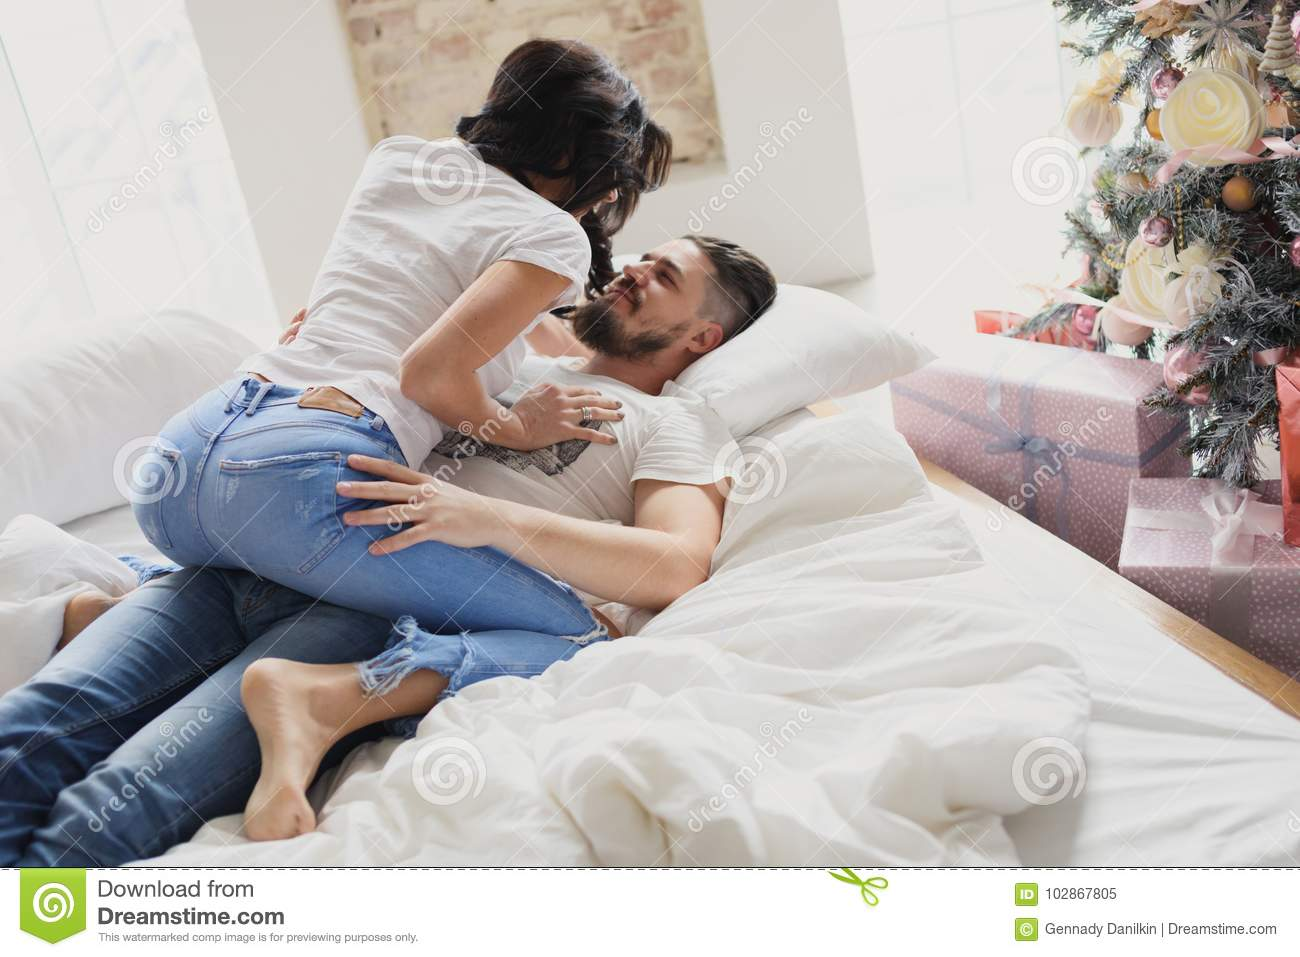 Photos of lovers together